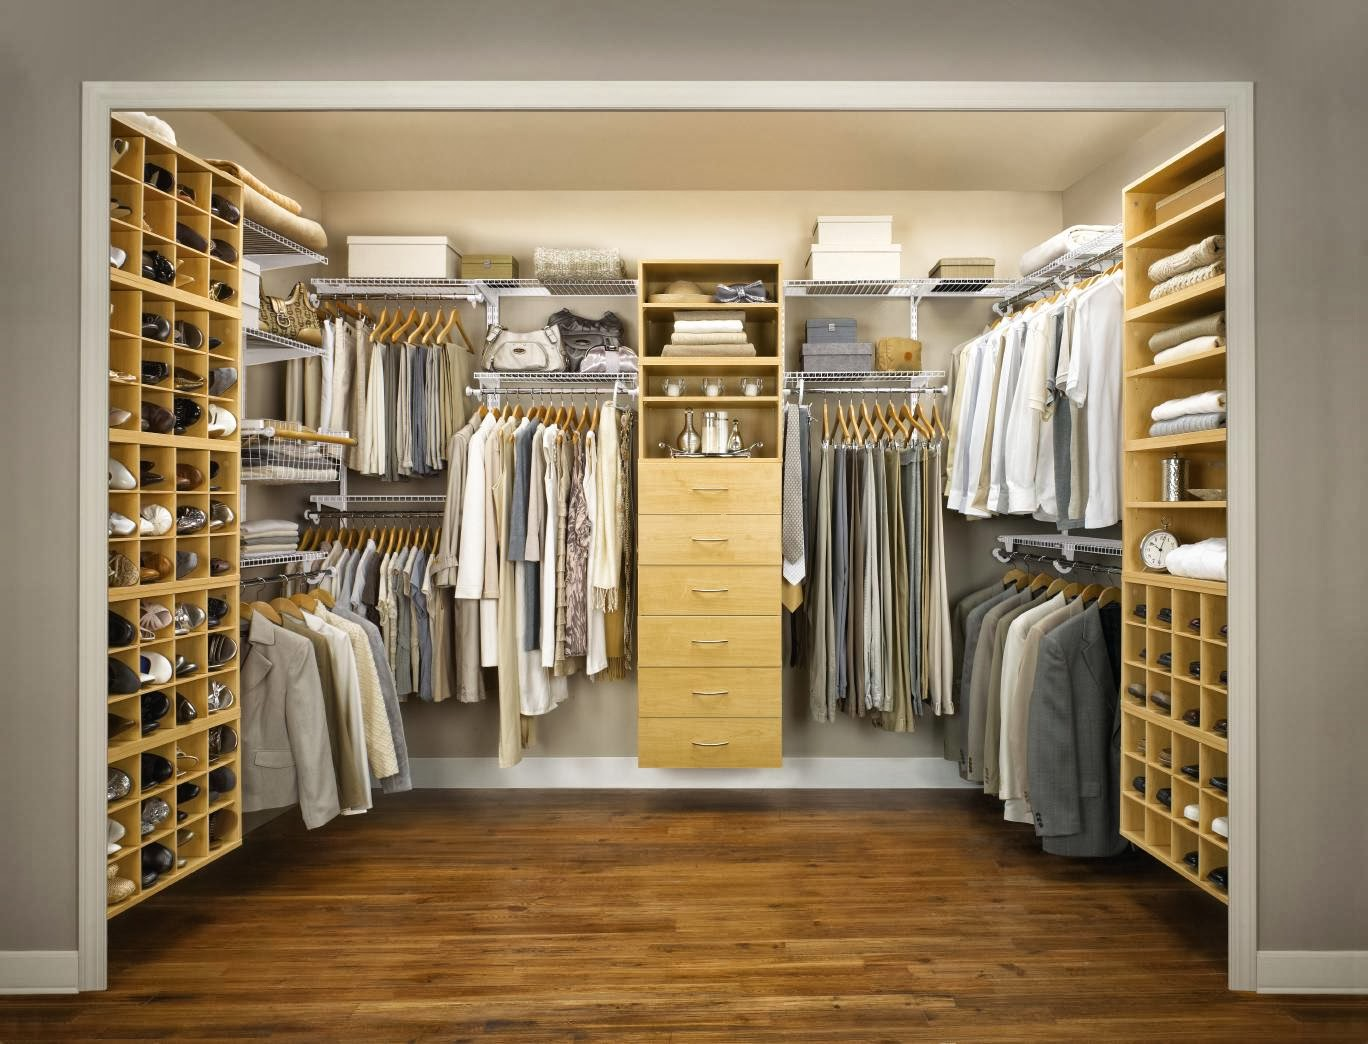 Bedroom Closet Storage Ideas Large And Beautiful Photos Photo - Master bedroom closet organization ideas